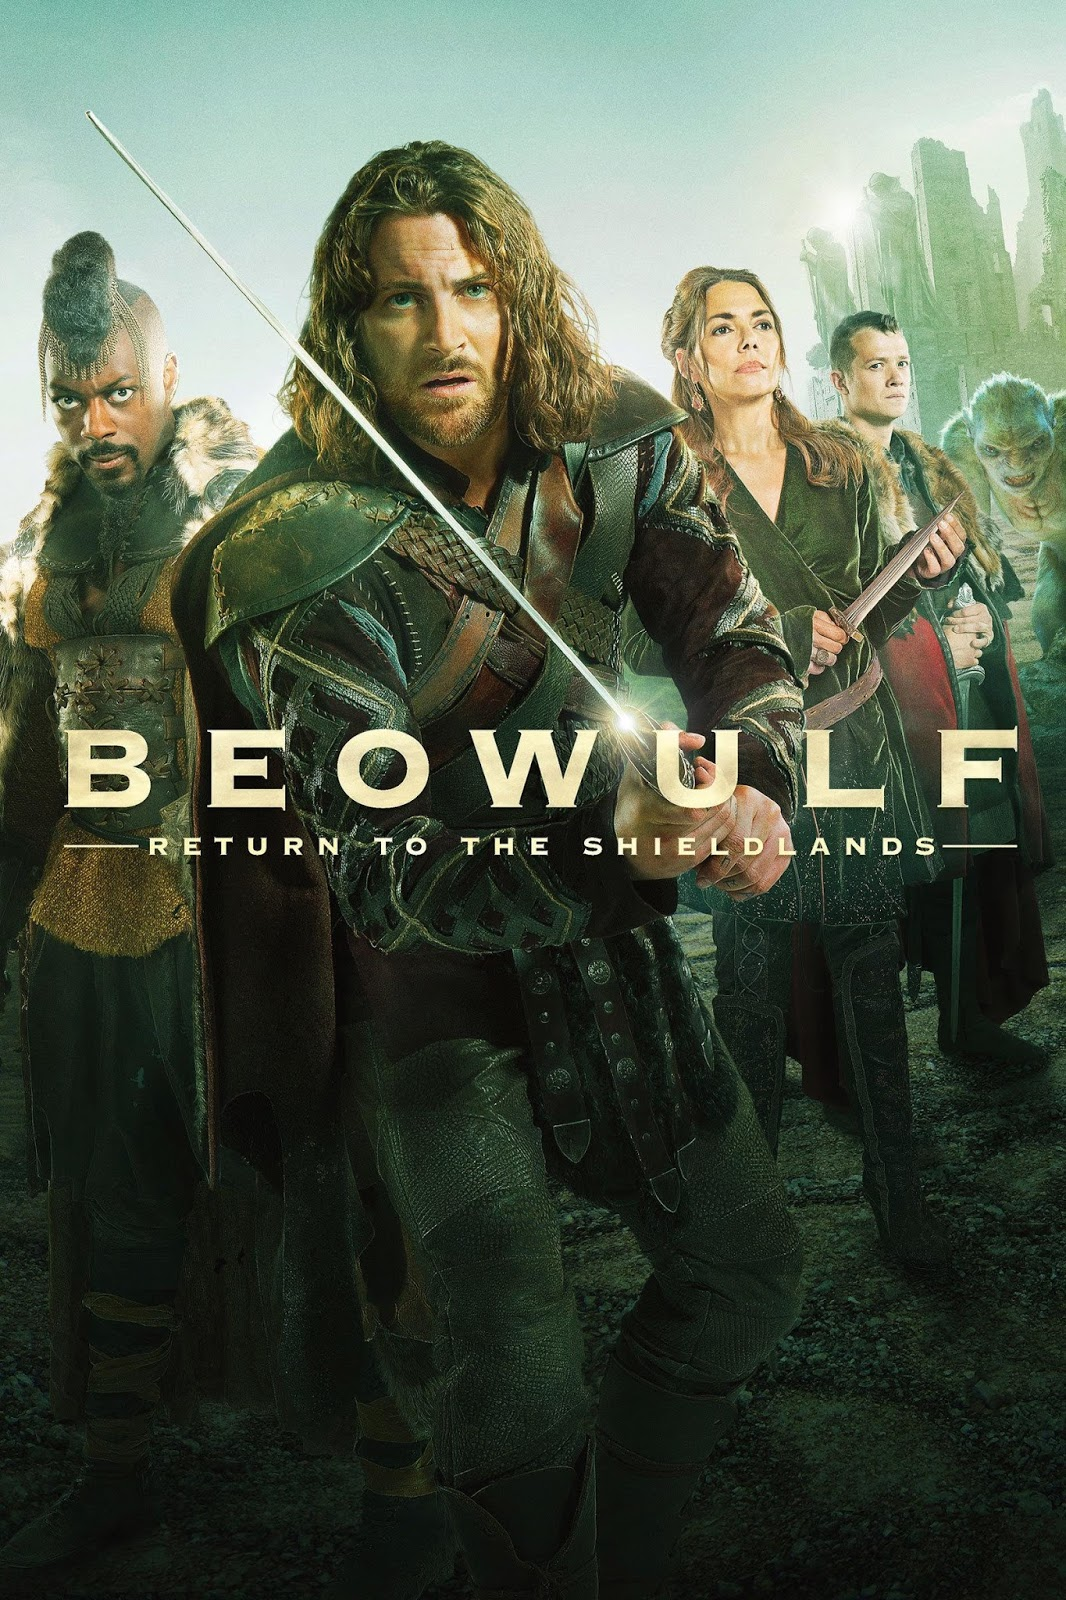 download series Beowulf: Return to the Shieldlands S01E10 Episode 10